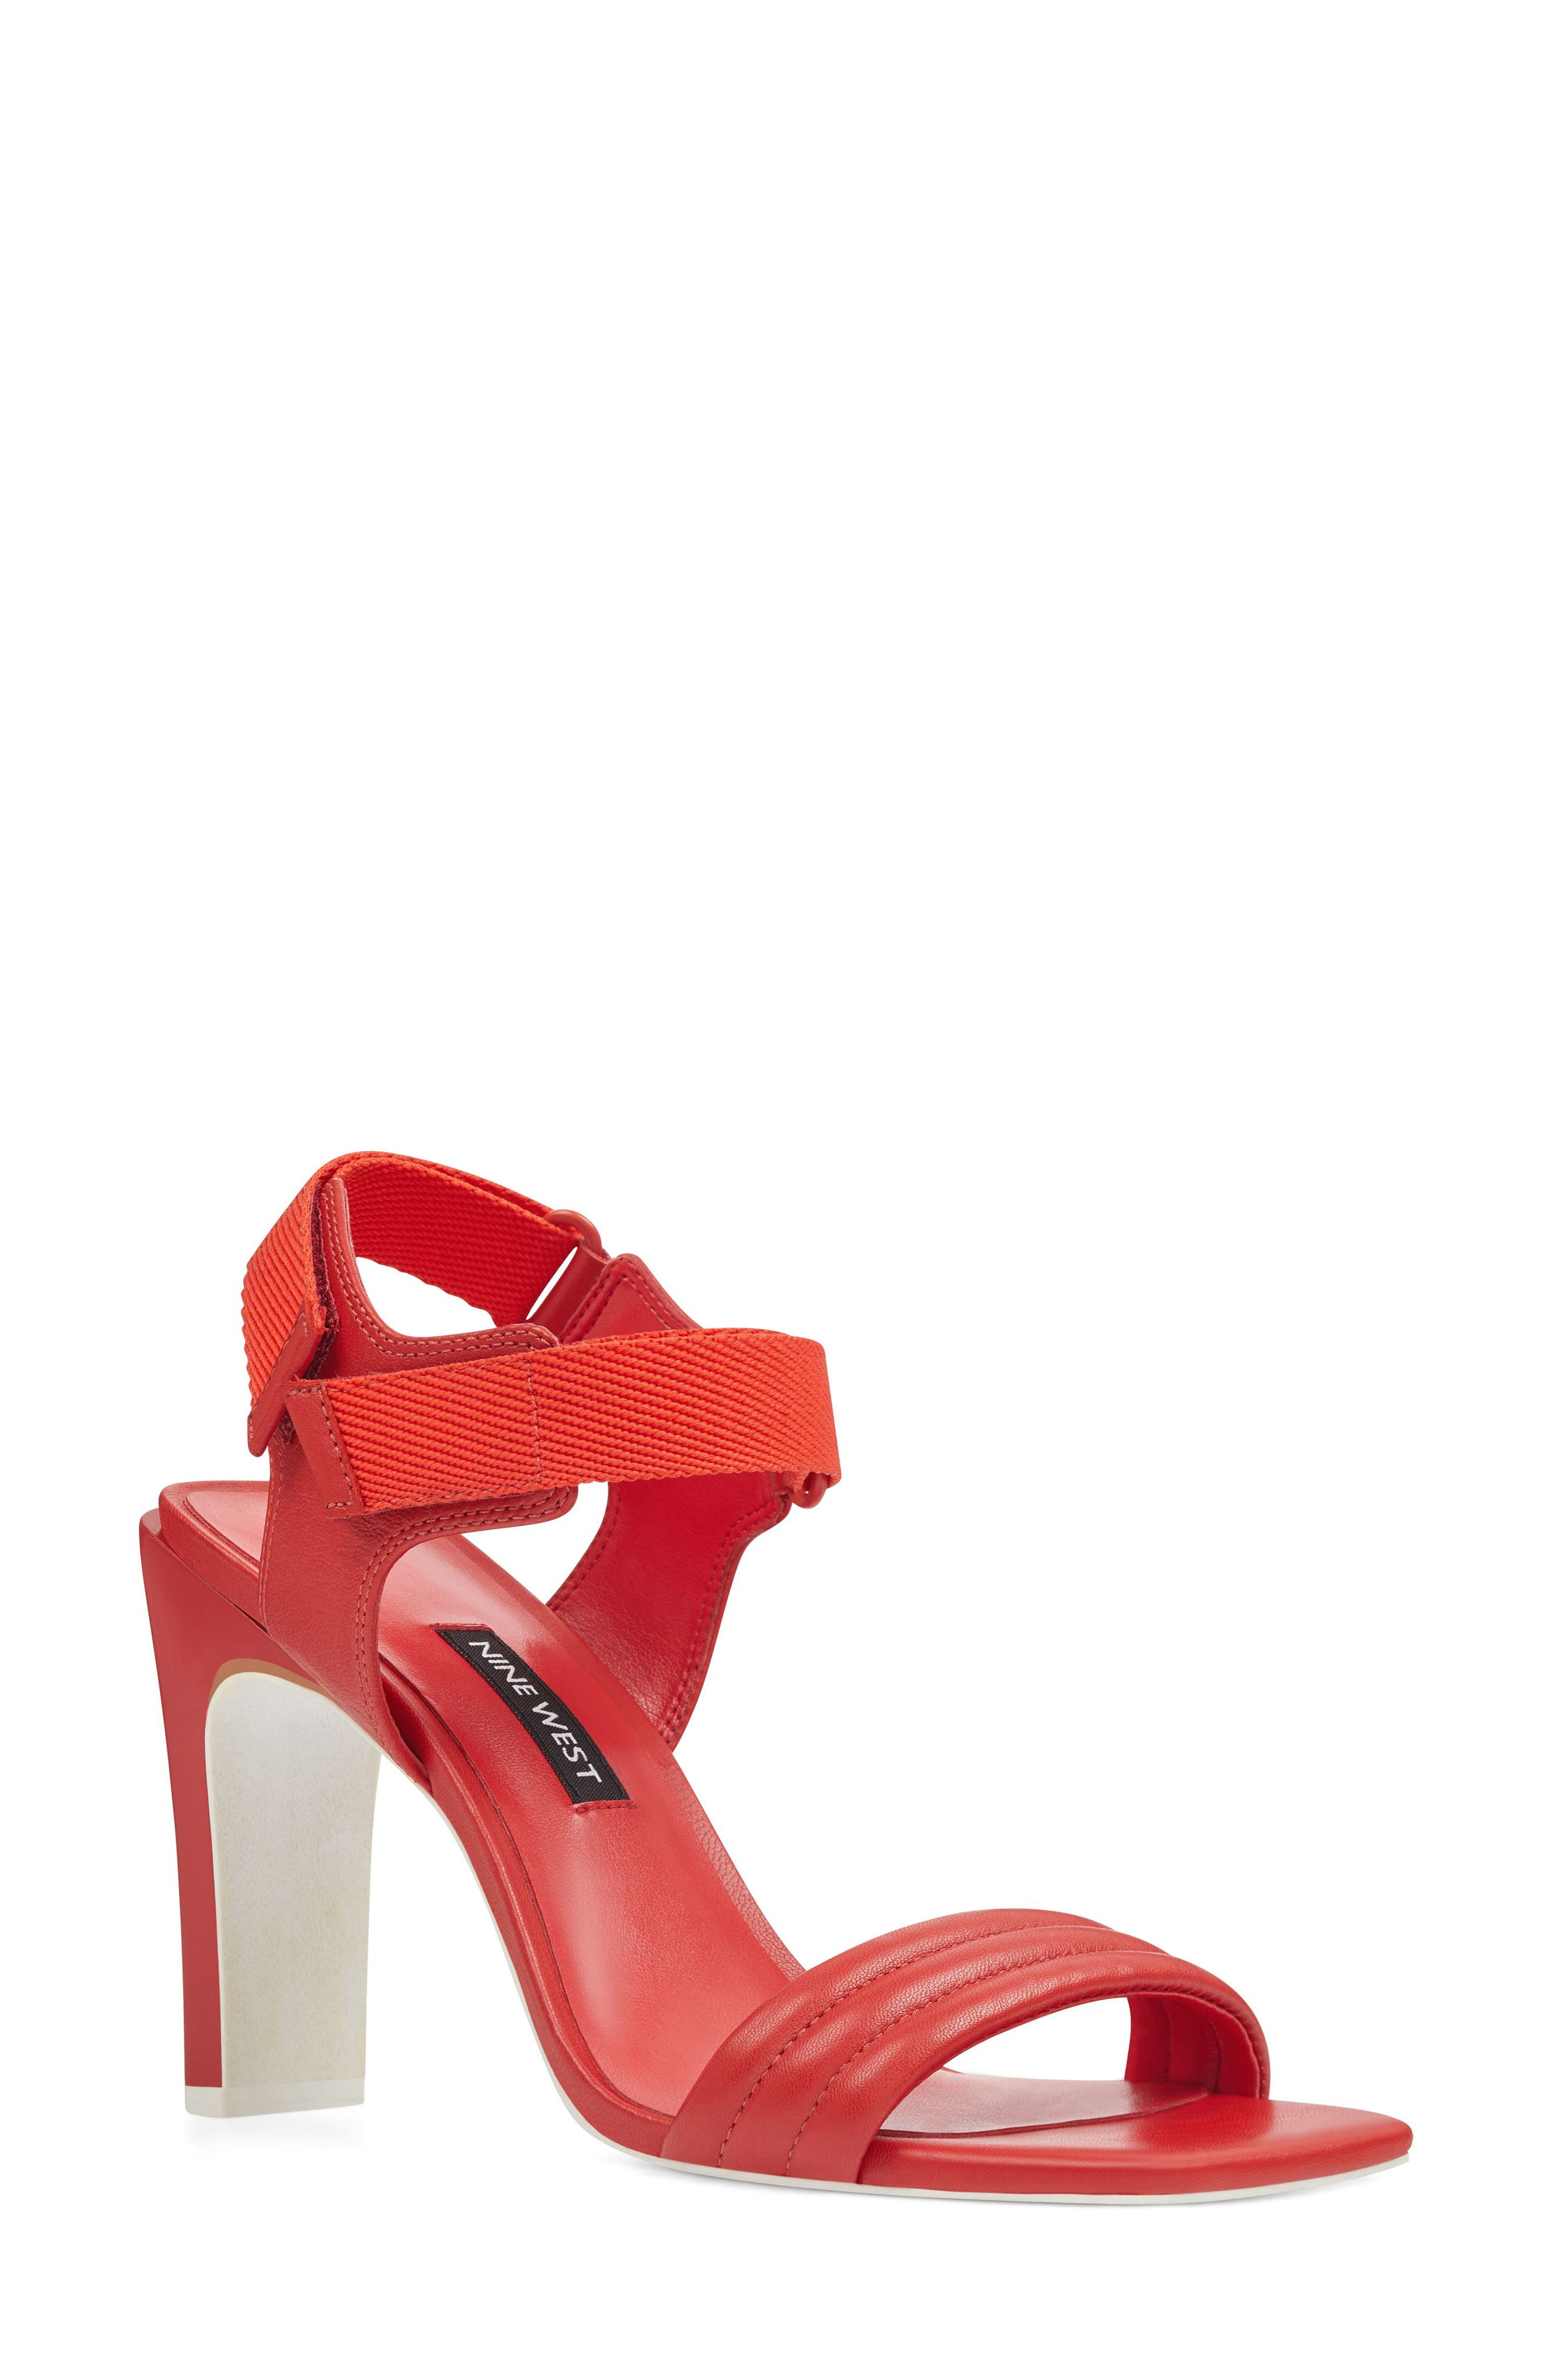 Zebree Sandal,                             Main thumbnail 1, color,                             Red Leather